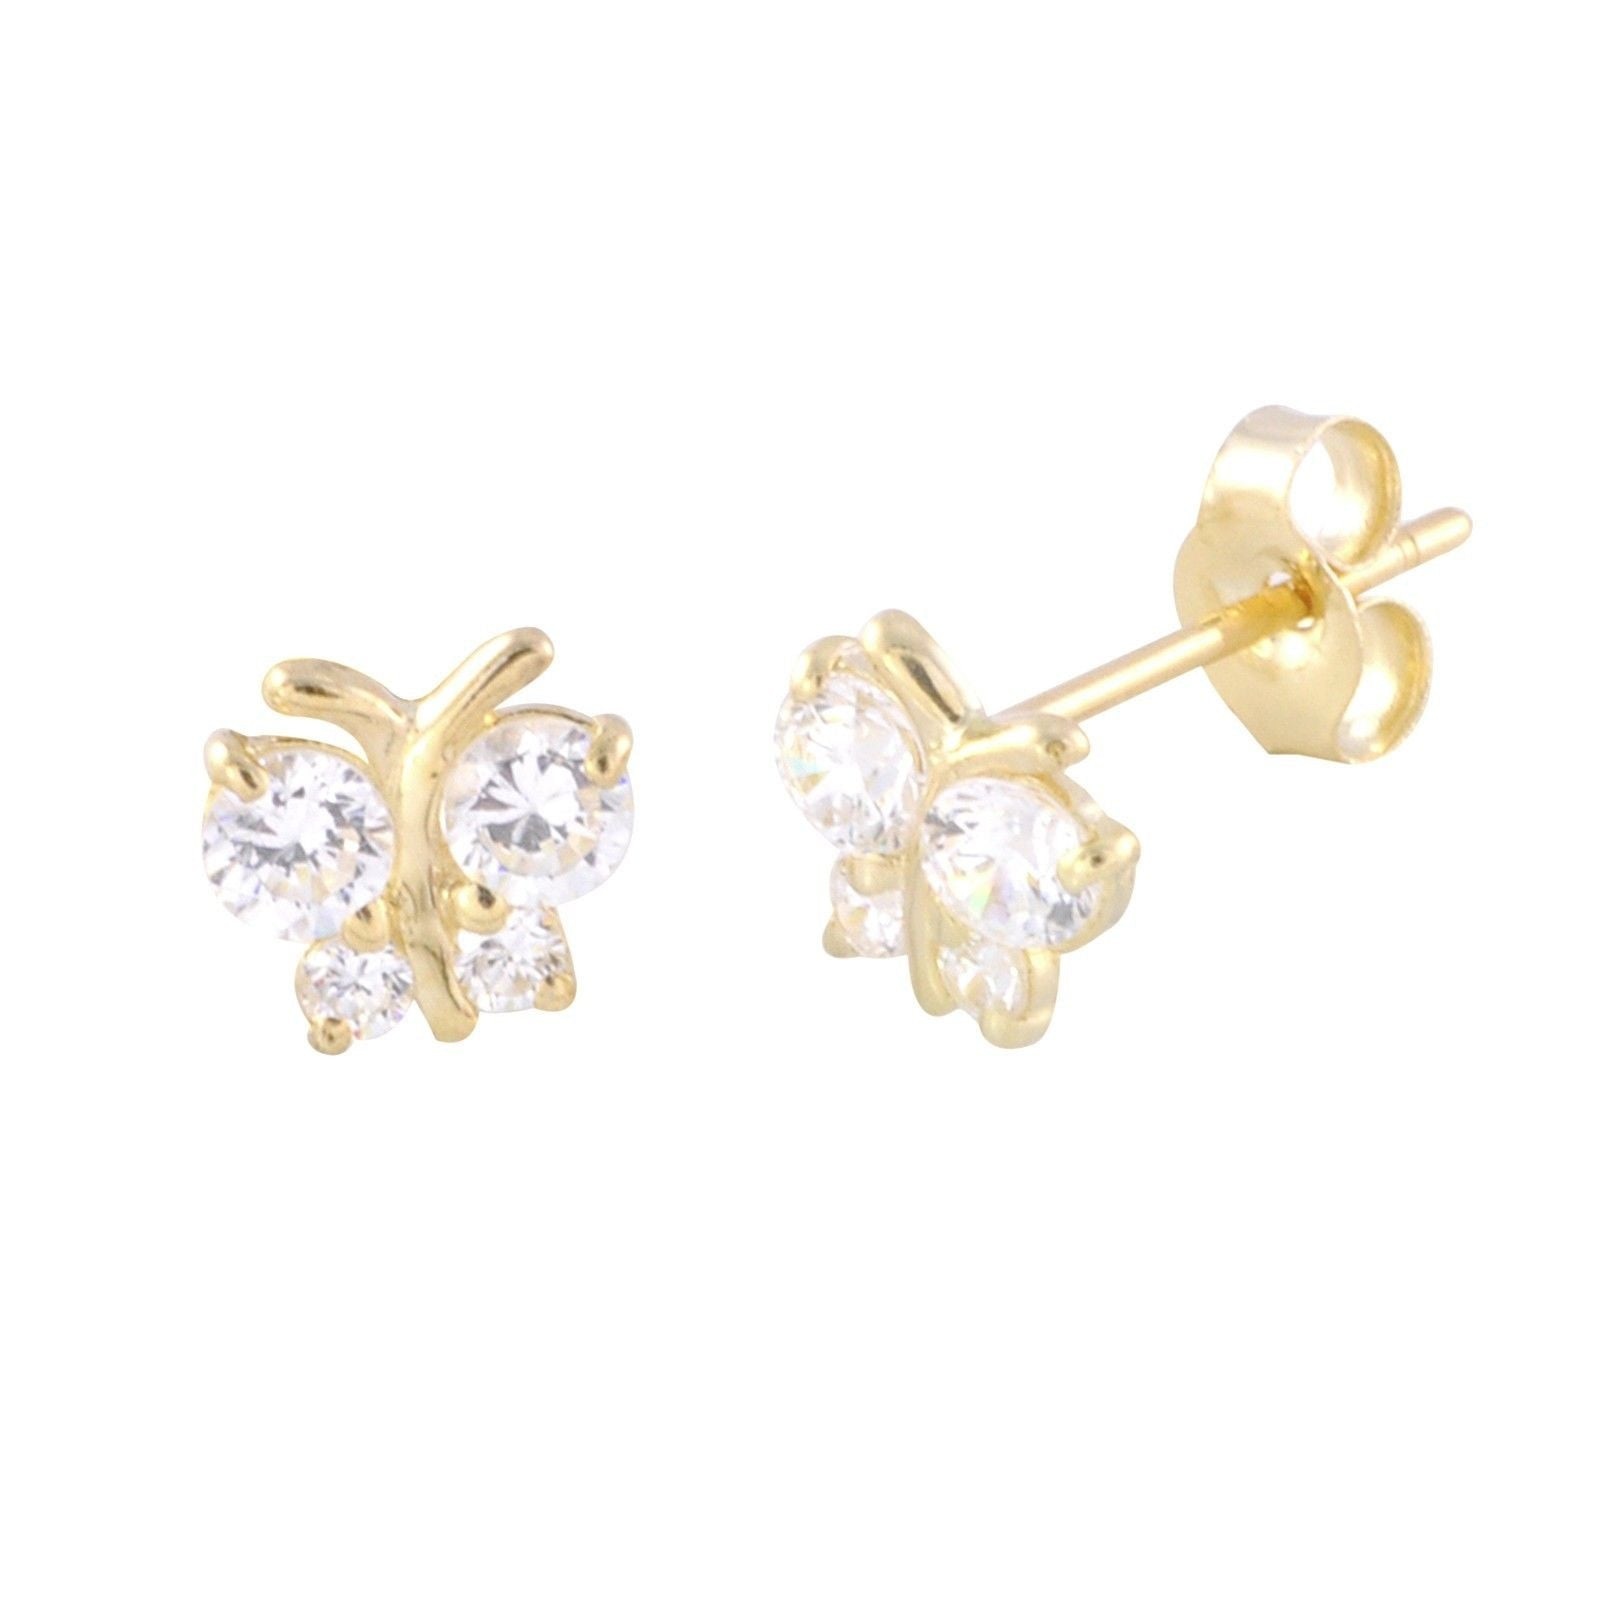 designer jewelry diamond bloomingdale in lyst gold tw ct bloomingdales pave earrings white s stud butterfly women pav